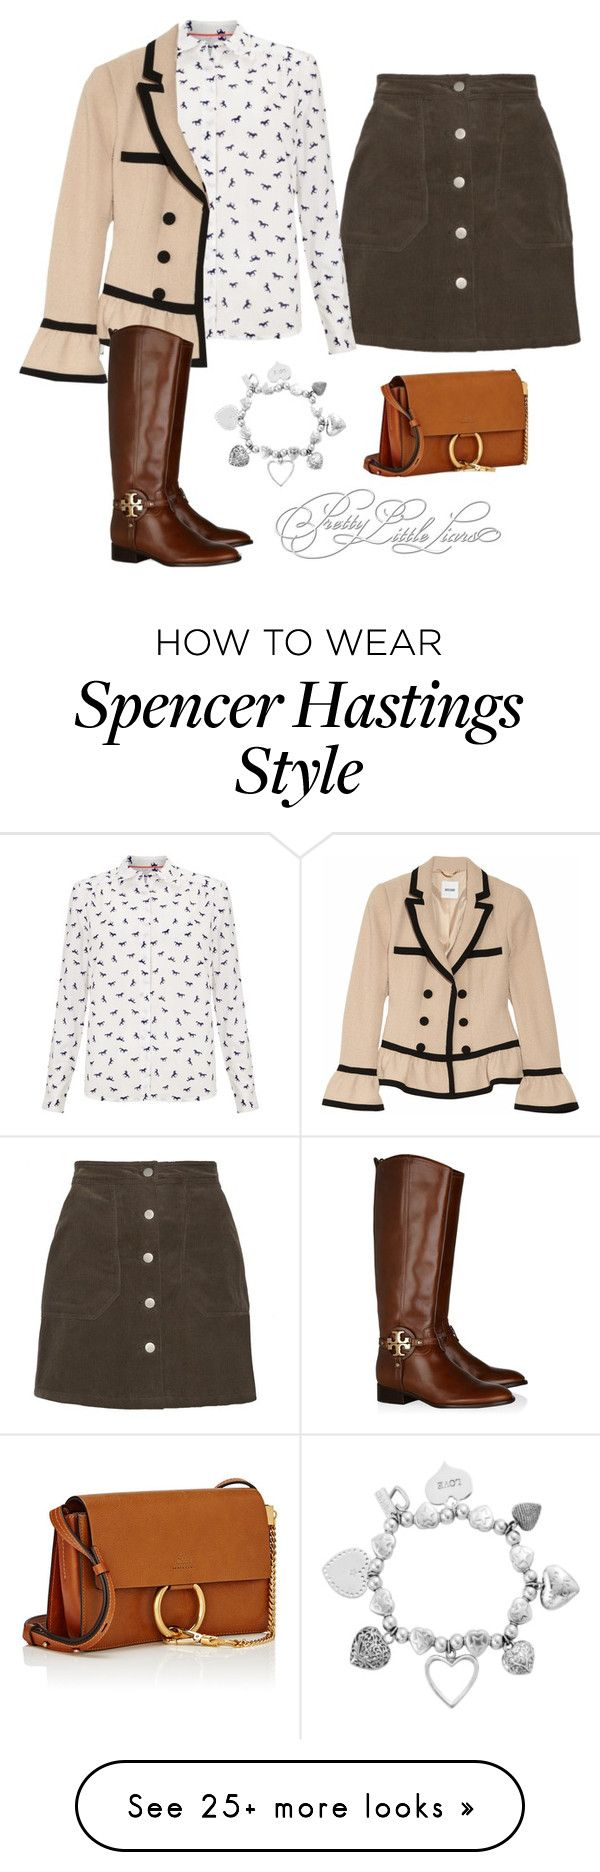 """""""Spencer Hastings"""" by kittylovesxoxo on Polyvore featuring John Lewis, Moschino, Tory Burch, ChloBo and Chloé"""